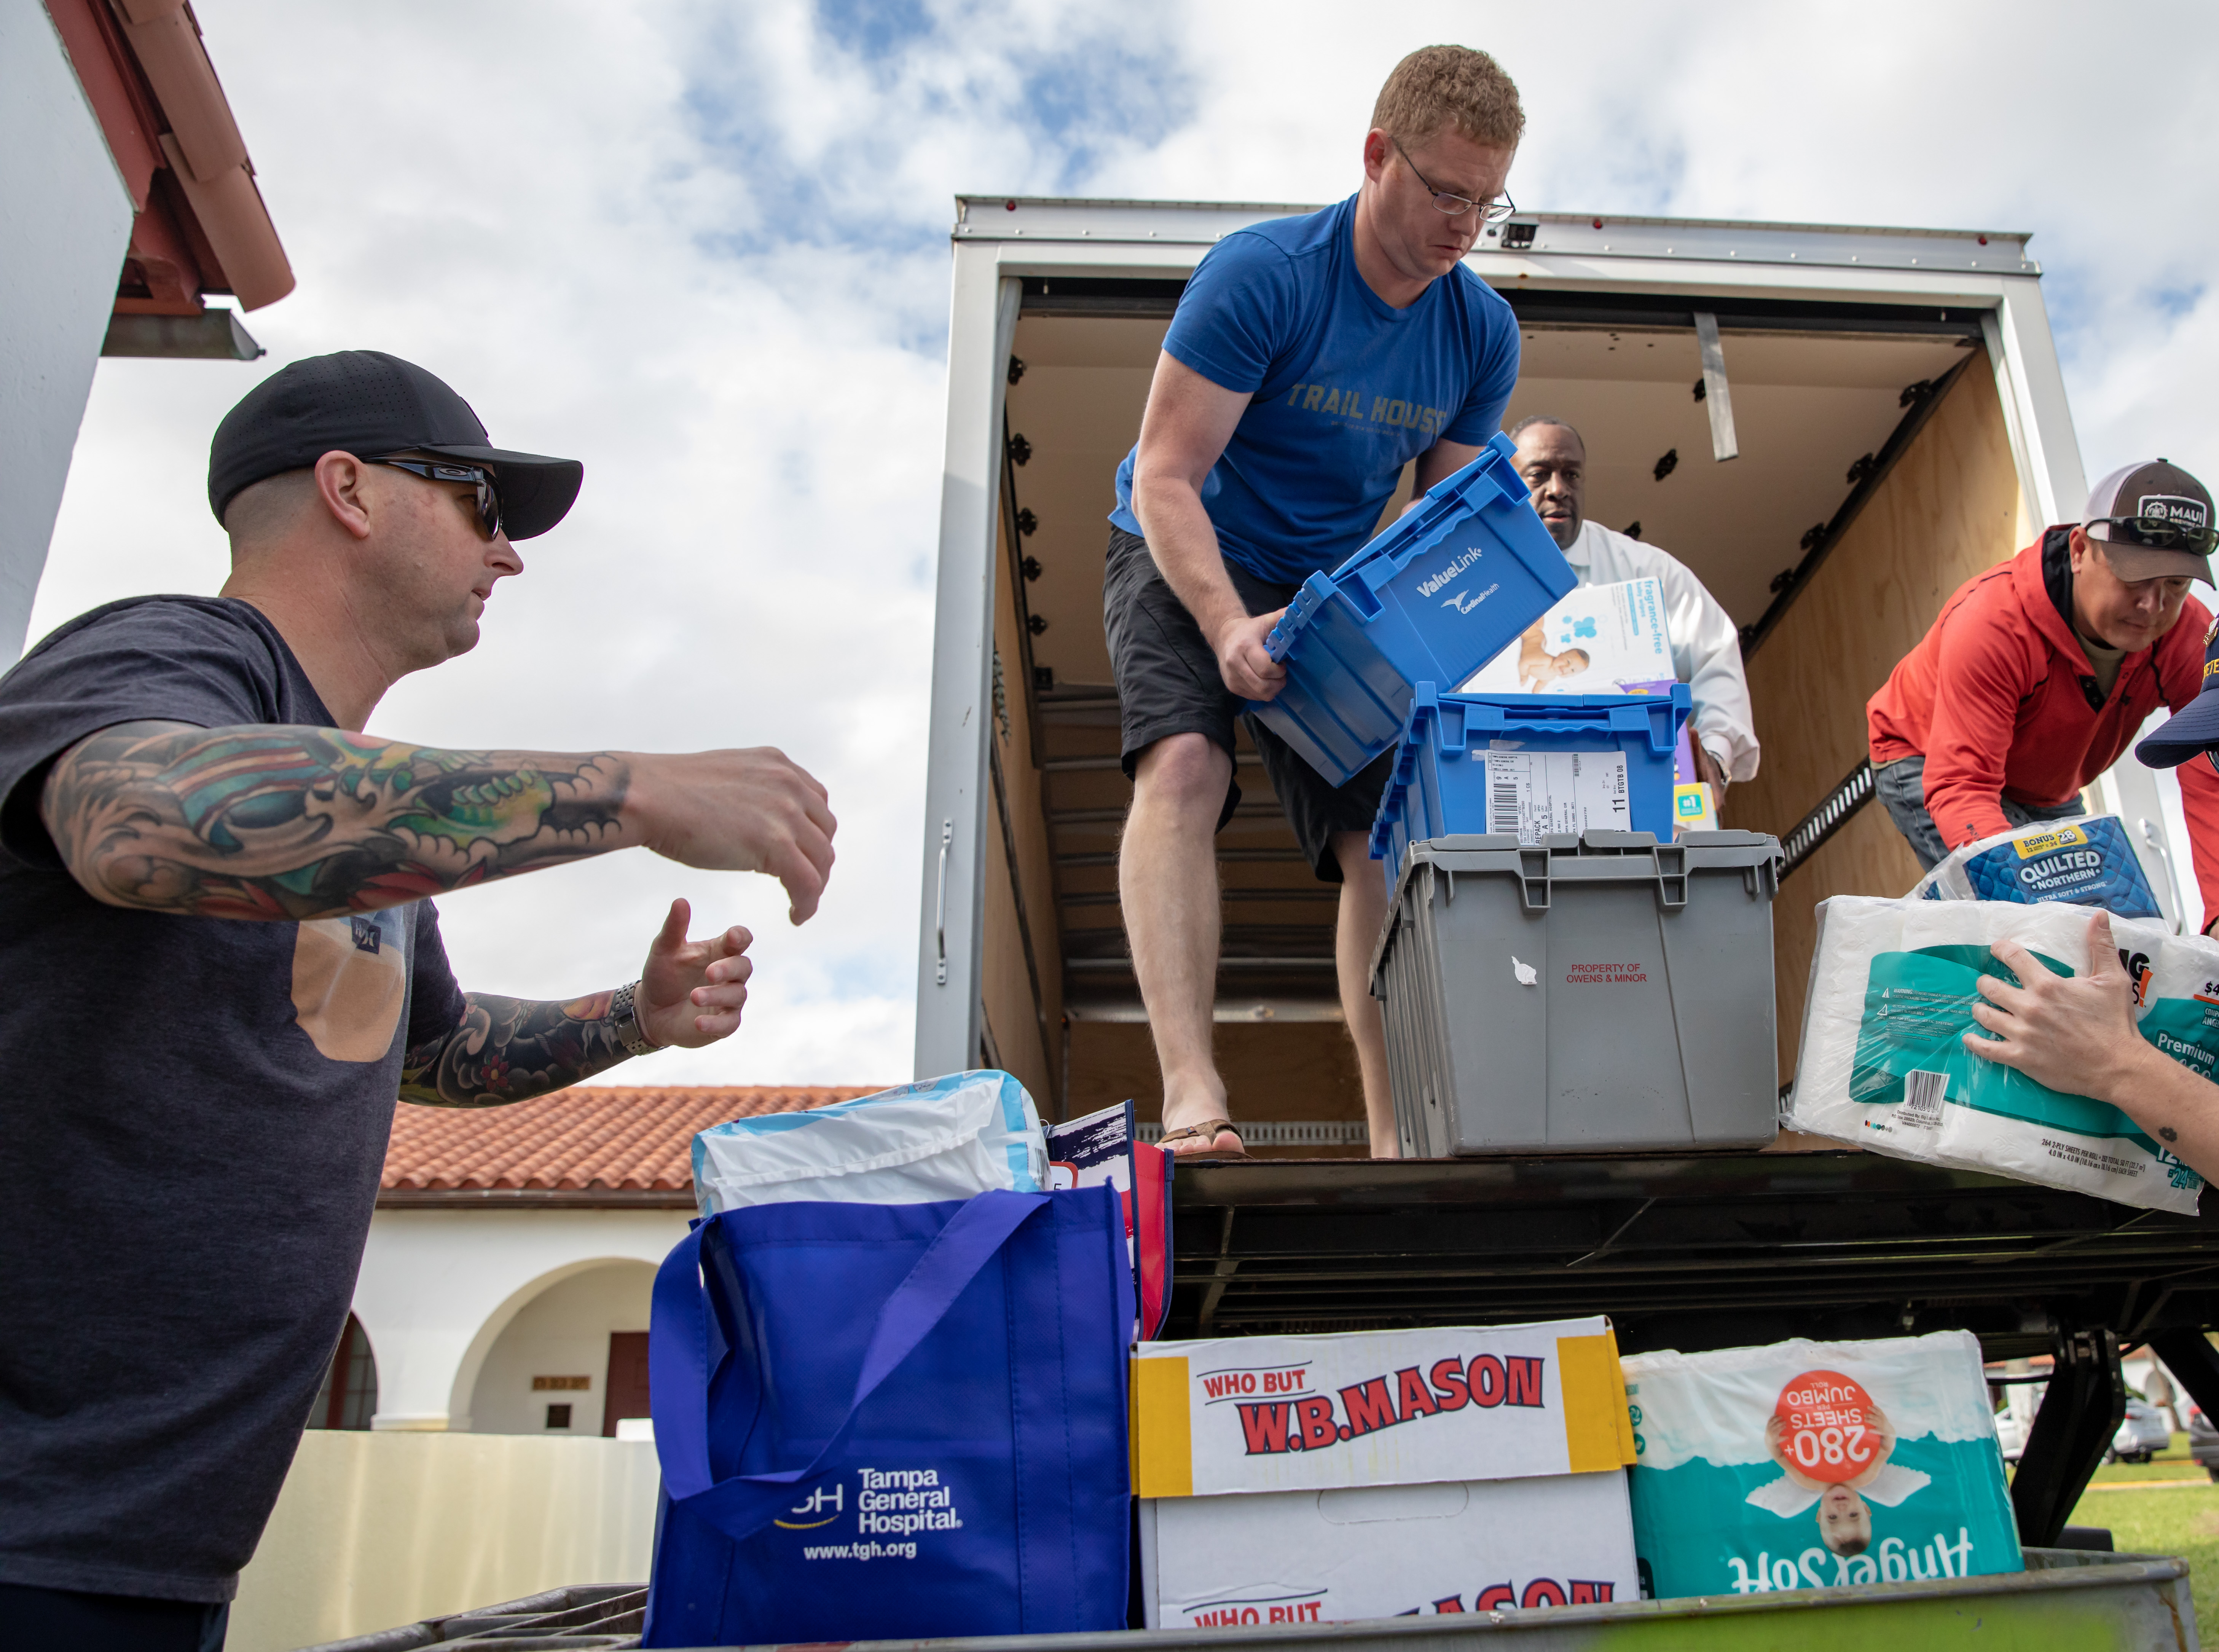 The donated goods arrive at the U.S. Coast Guard Base in St. Petersburg.